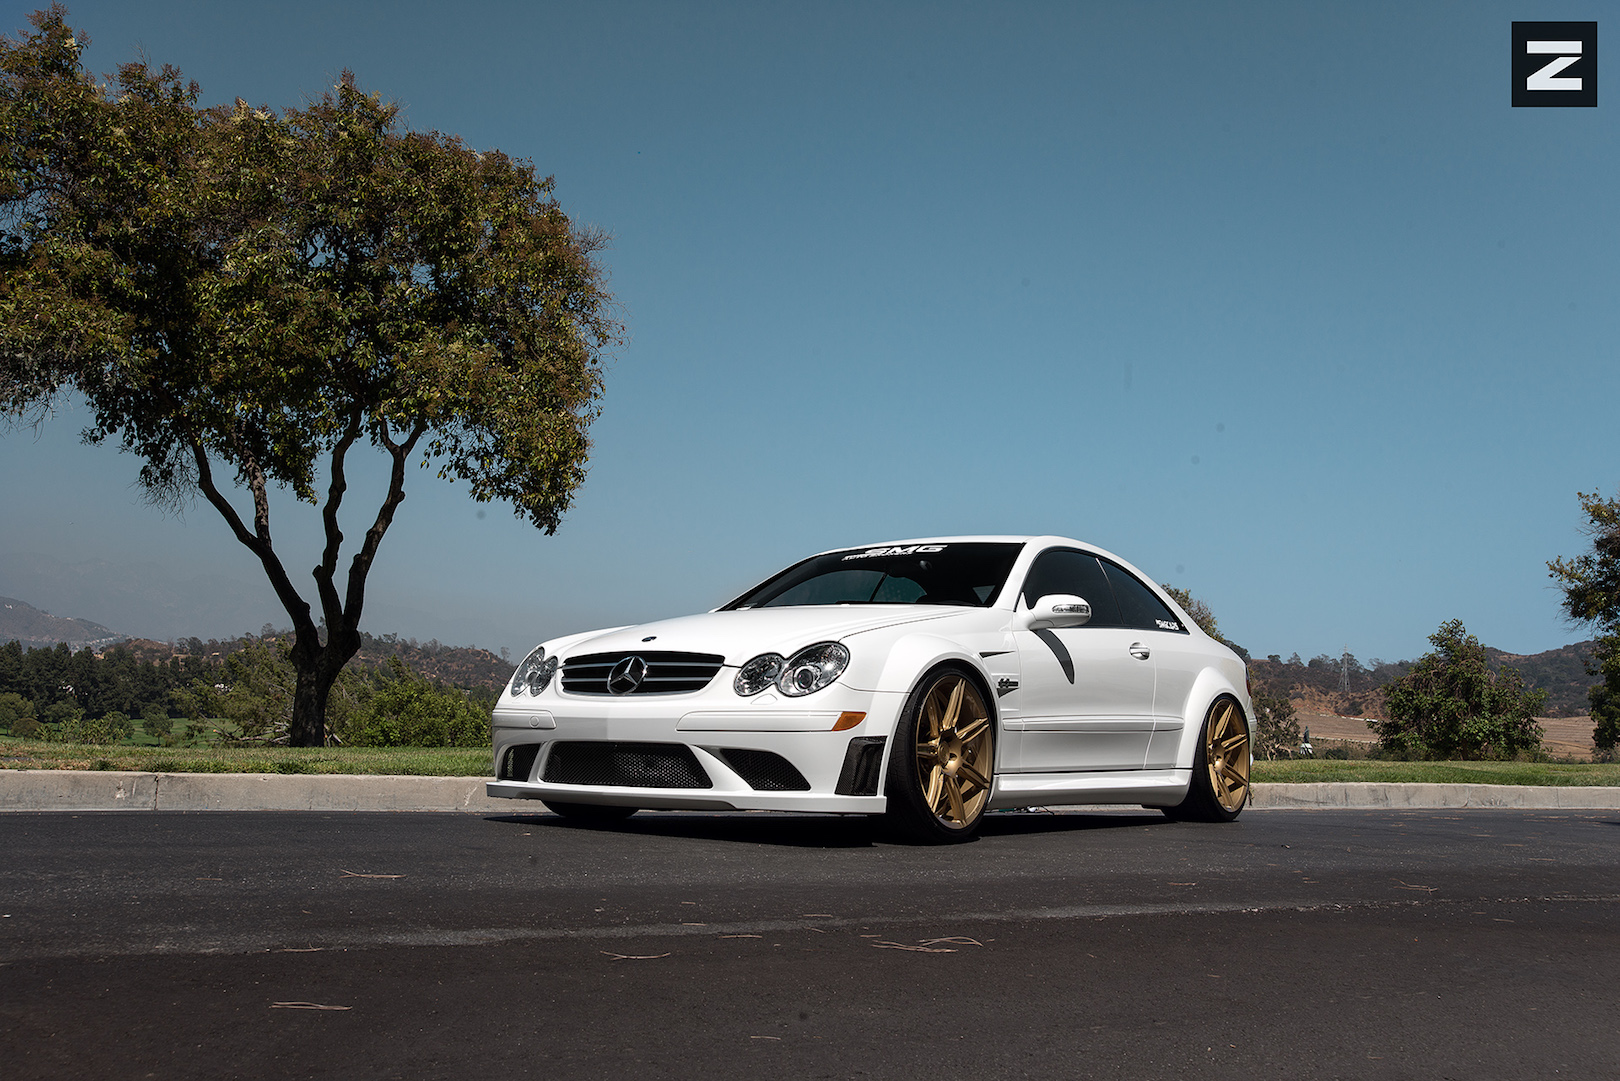 Mercedes Benz CLK63 AMG White Gold ZS07